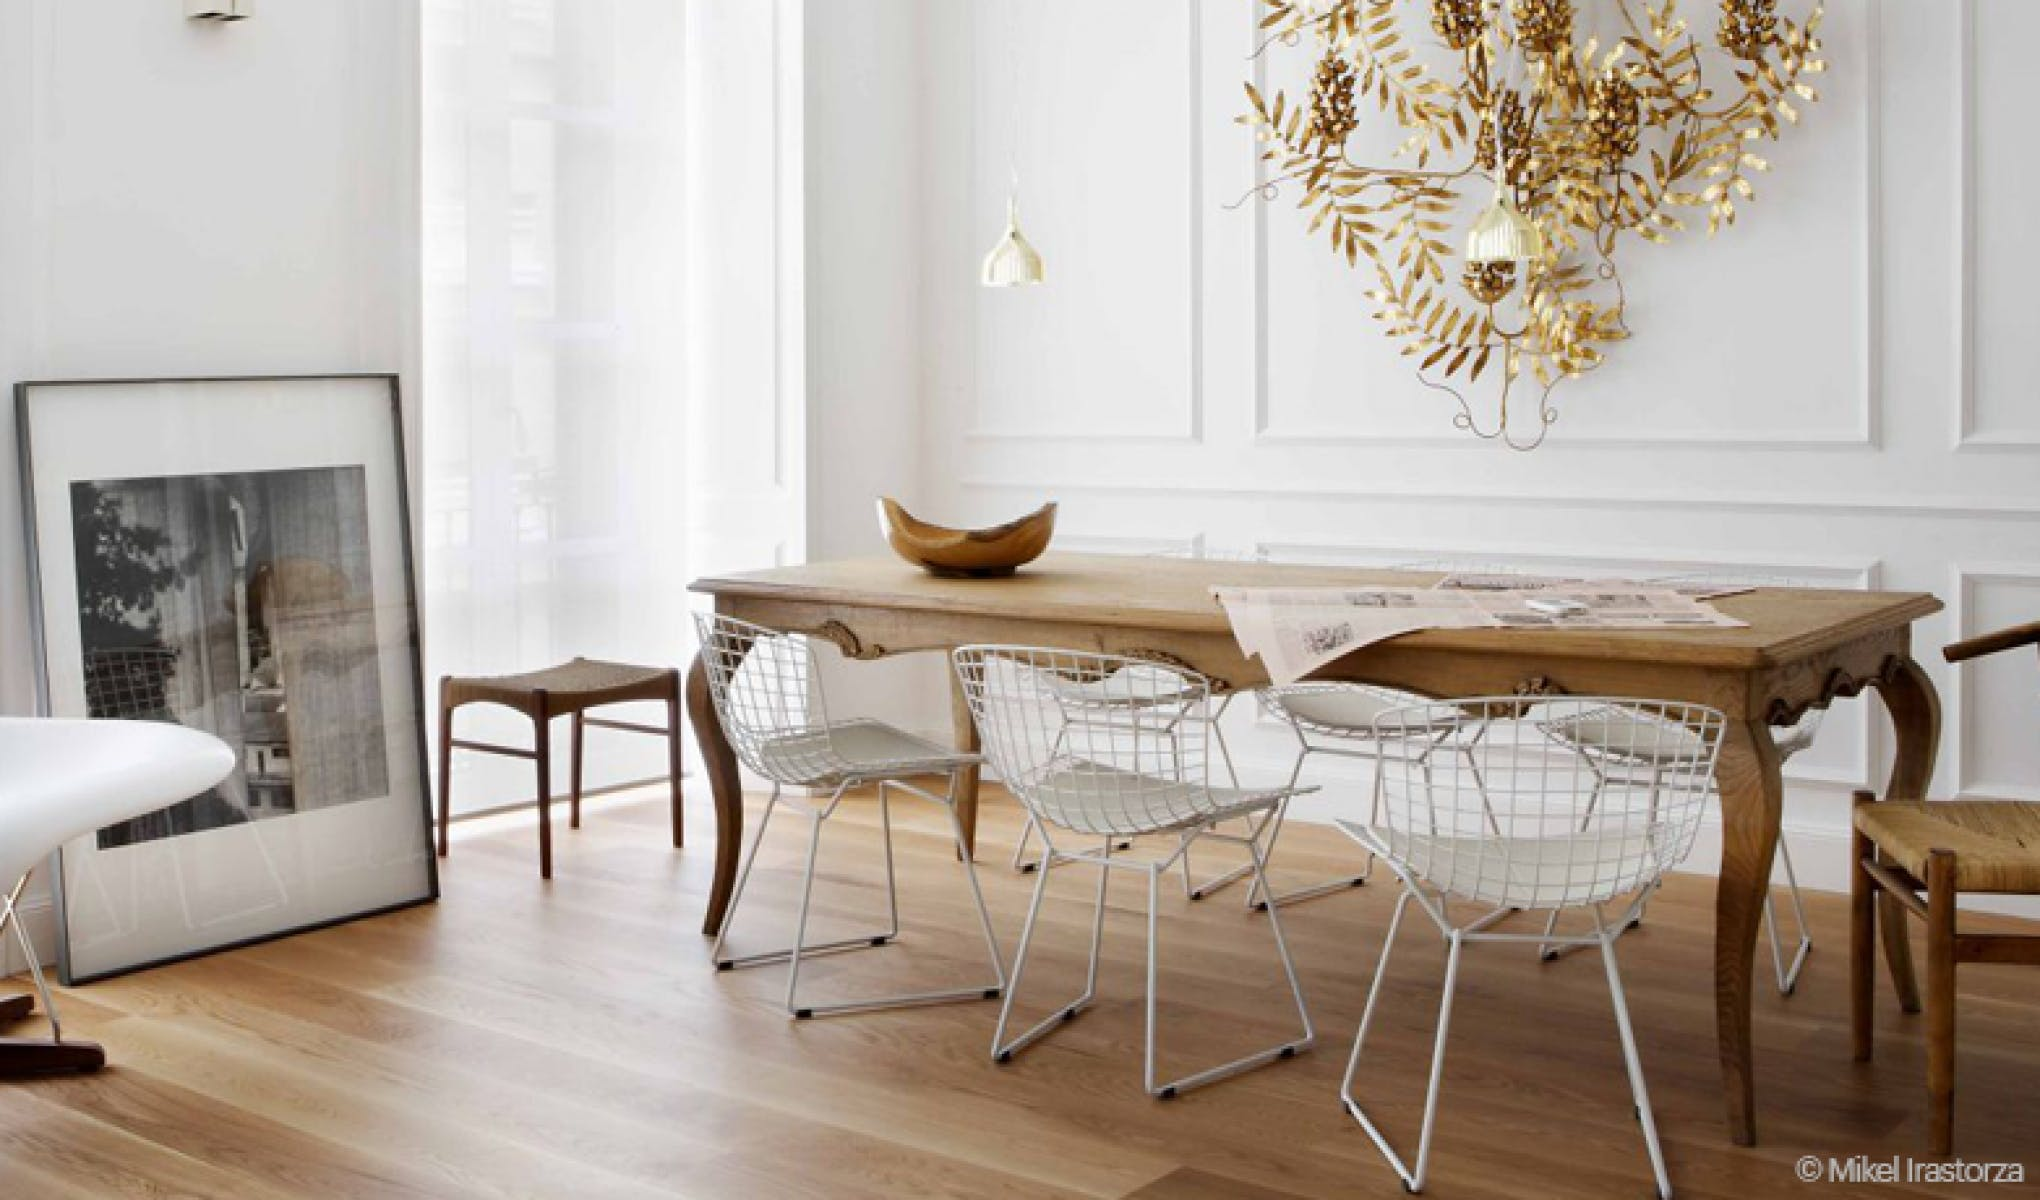 Stunning table ancienne et chaises modernes photos for Table et chaise salle a manger moderne